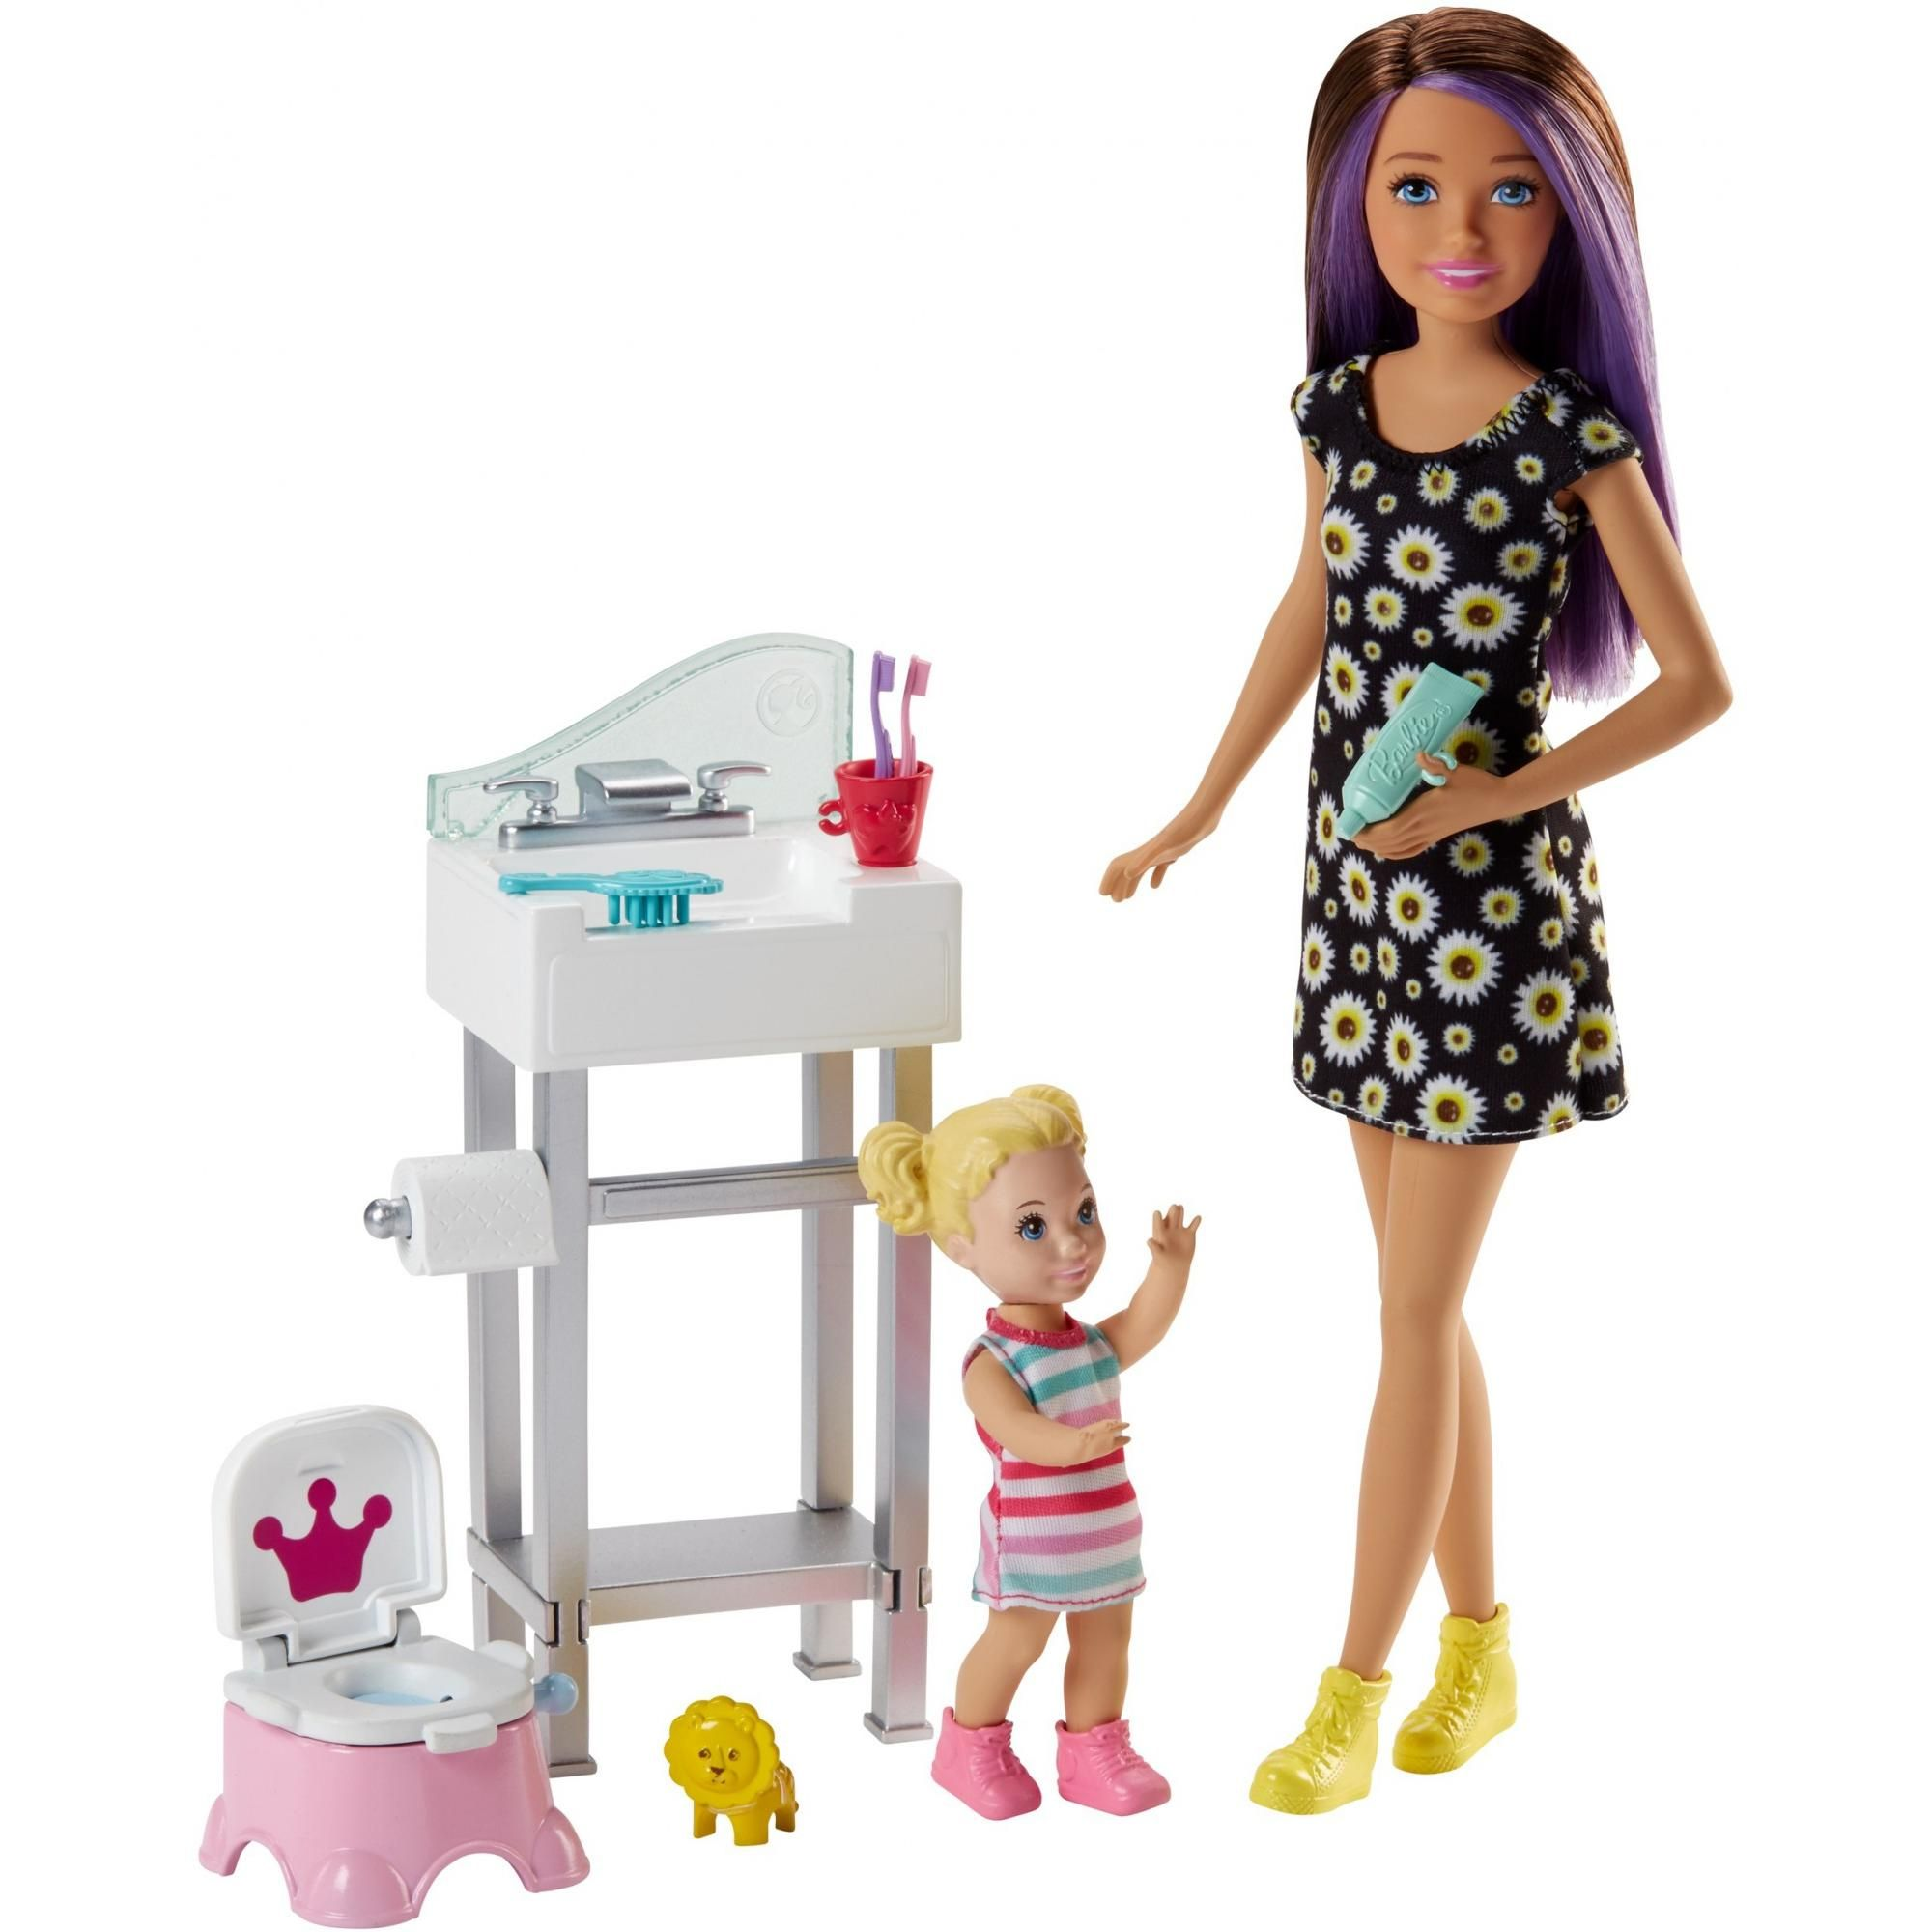 Barbie Skipper Babysitters Inc. Potty Training Playset and